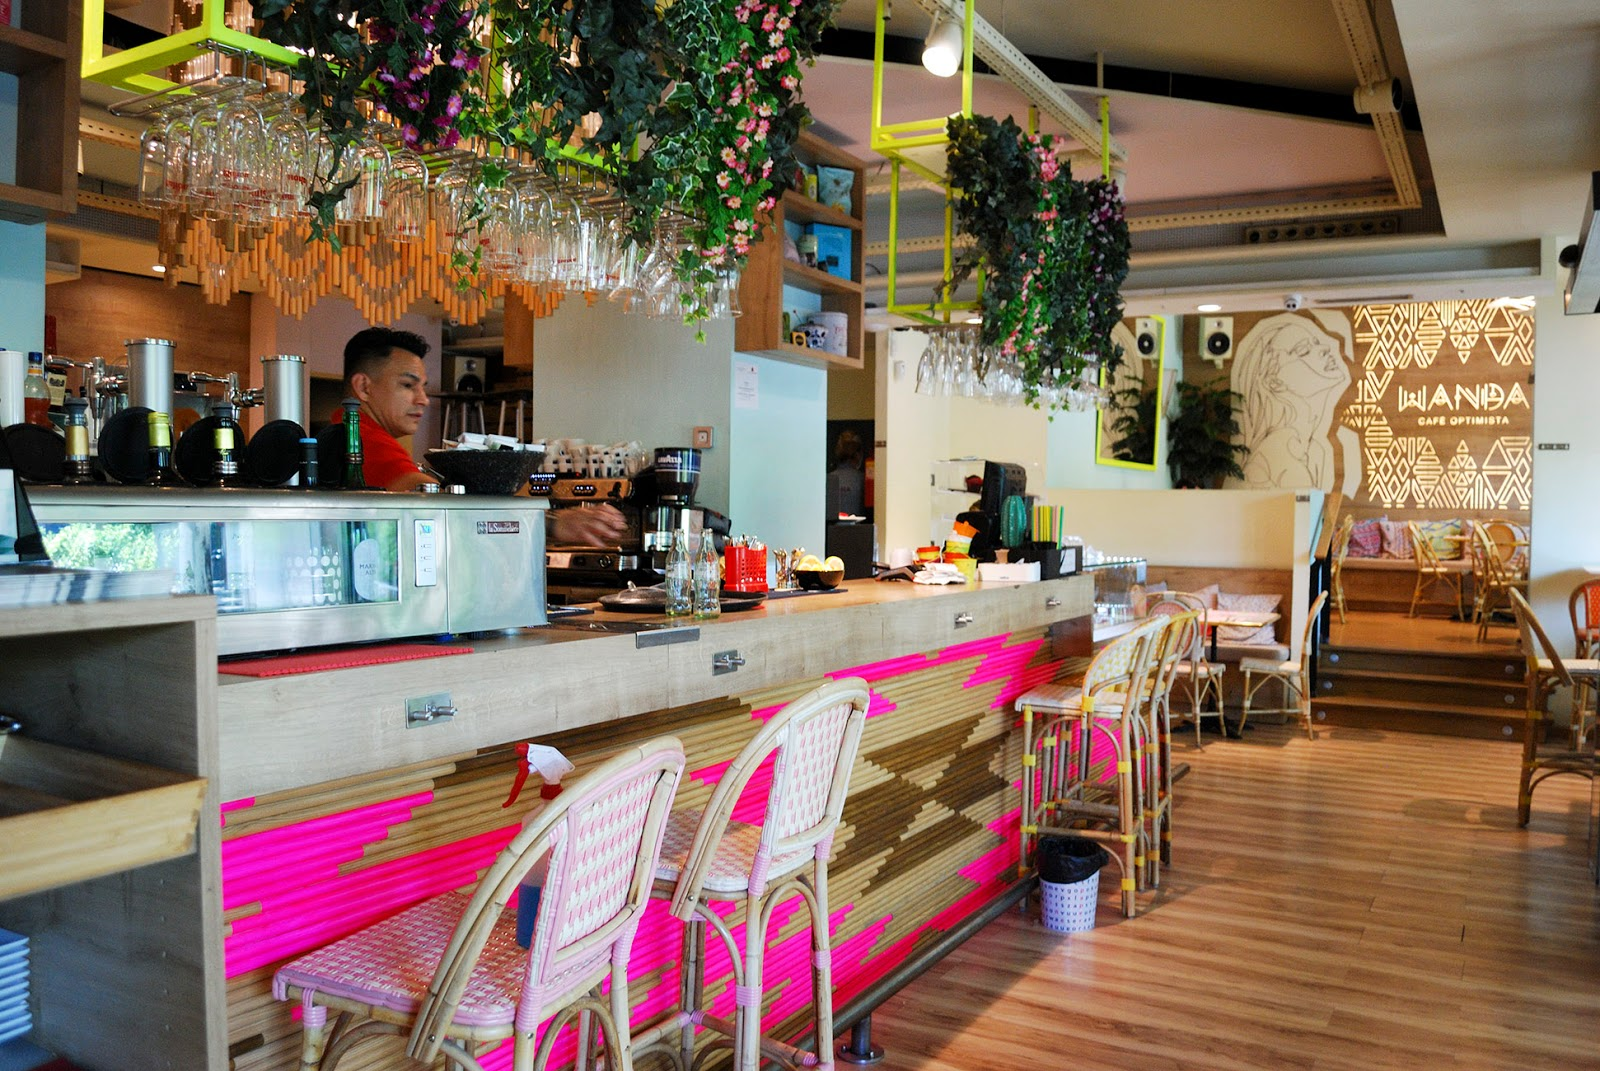 wanda cafe optimista madrid instagrammable